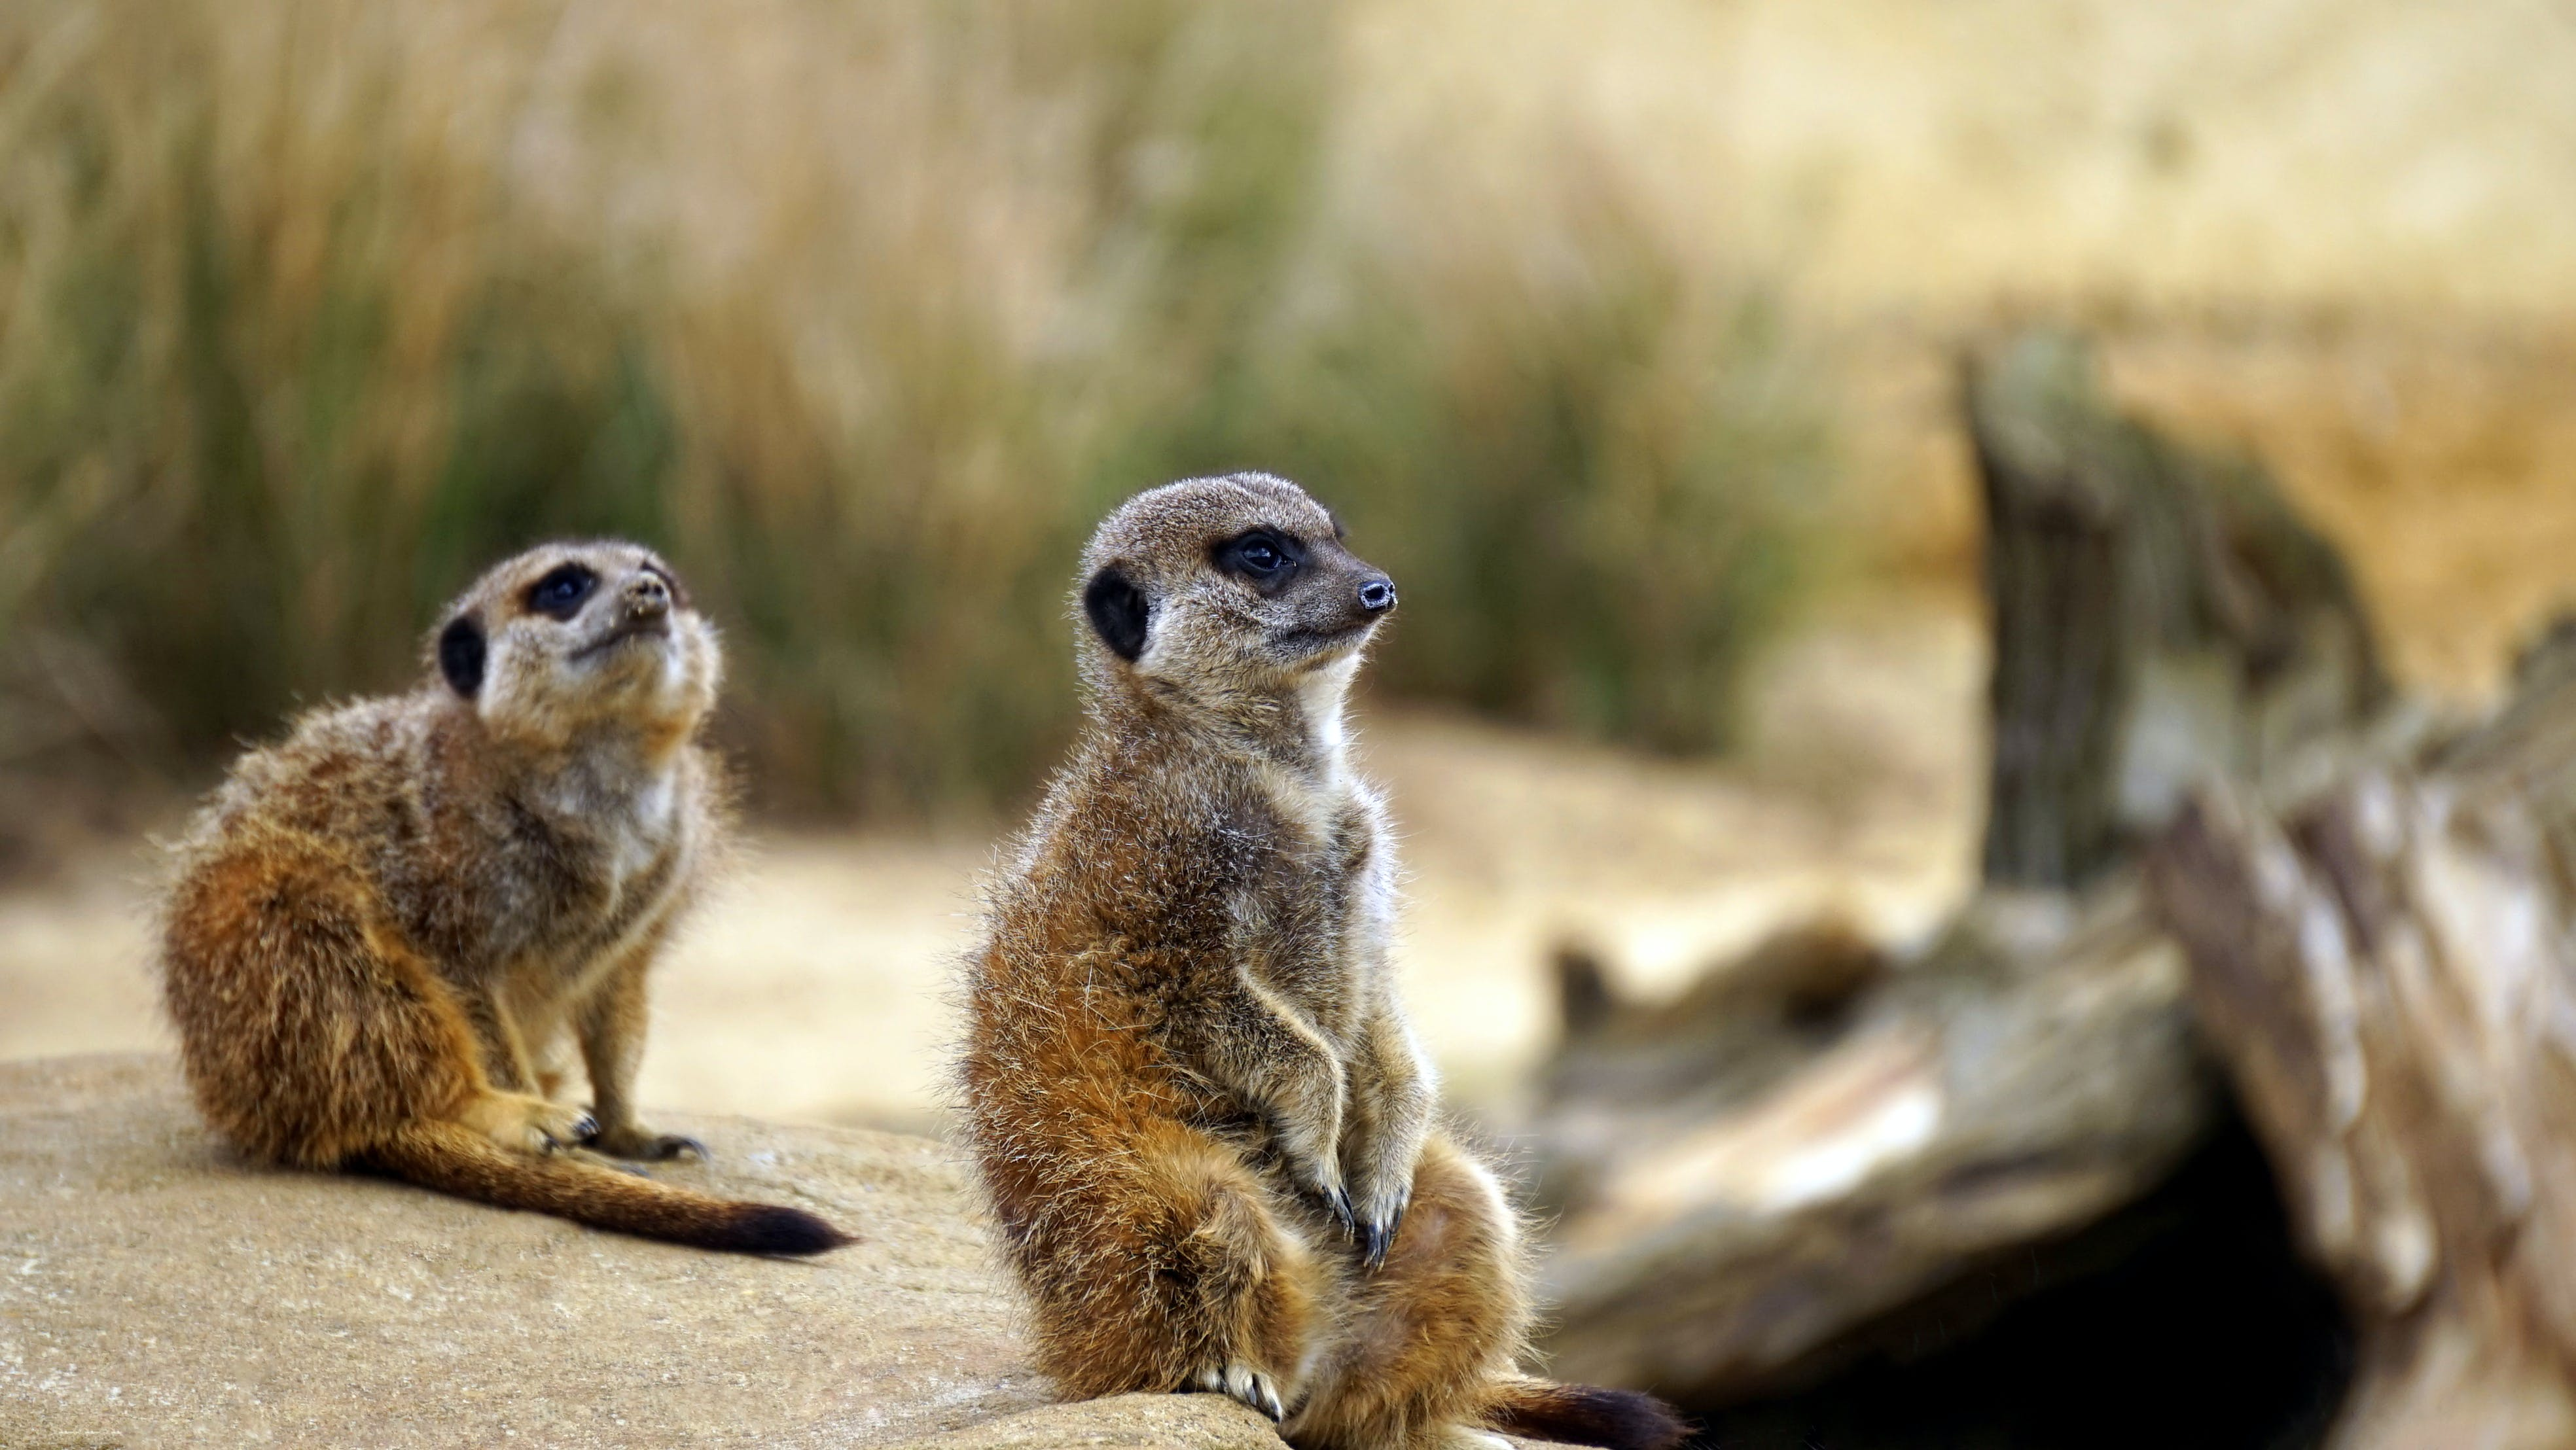 Two Brown Meerkats Near Green Plants Selective Focus Photography